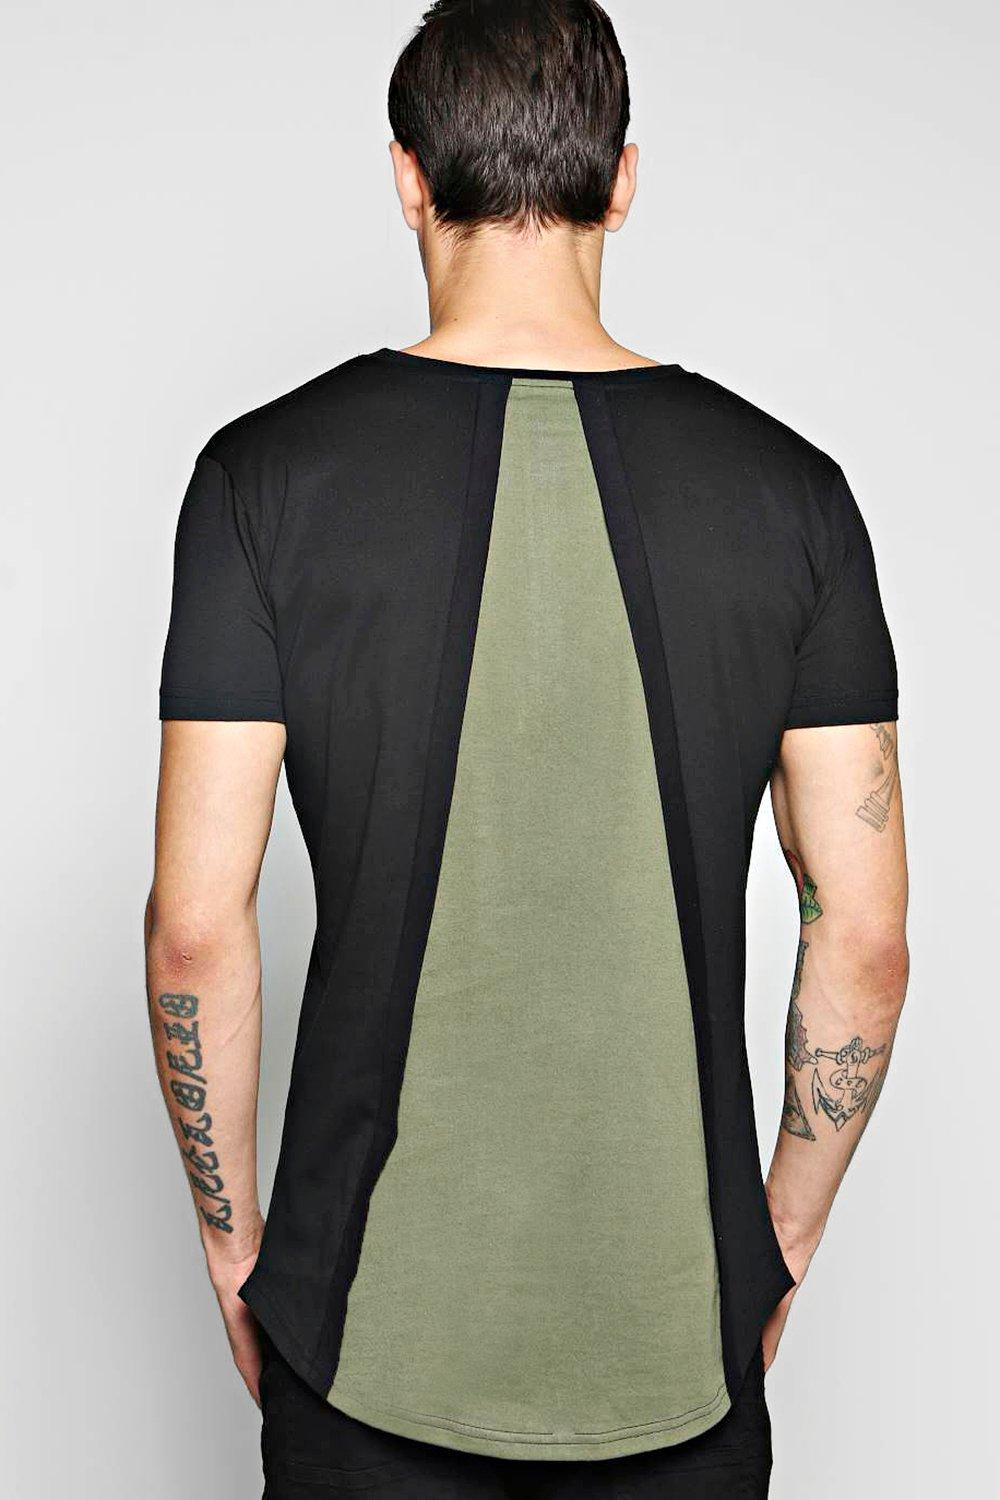 Image of And Sew Back Panel T Shirt - black